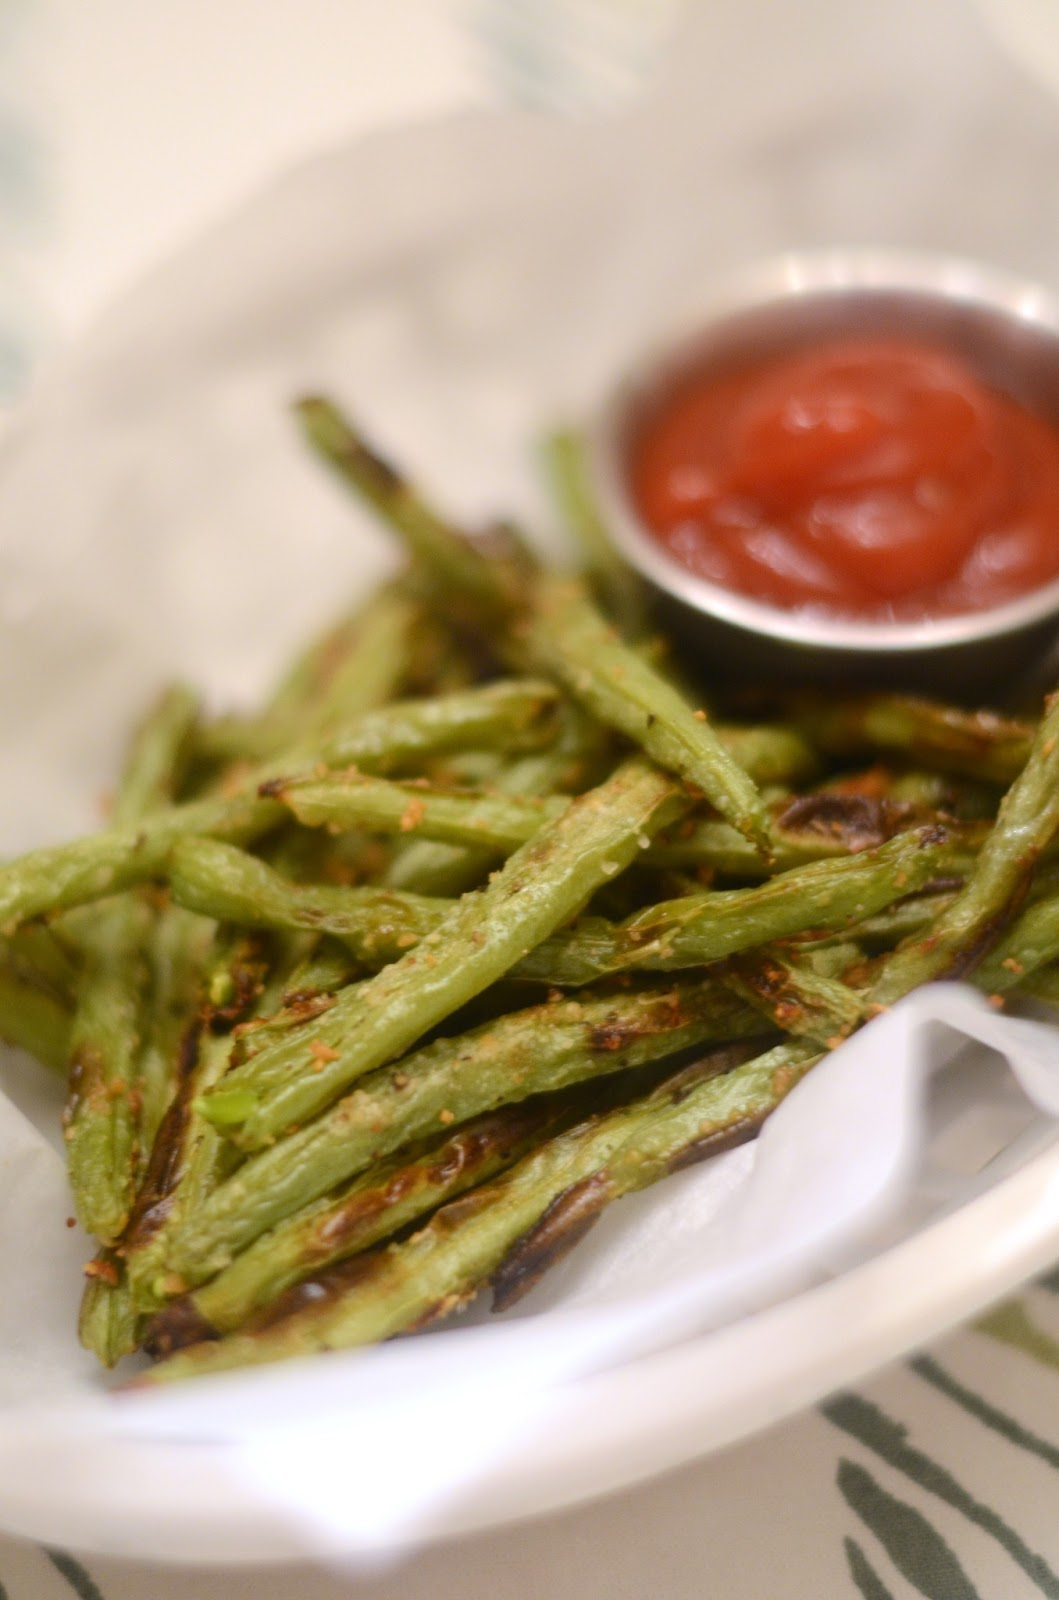 ... green bean fries recept yummly crispy baked parmesan green bean fries